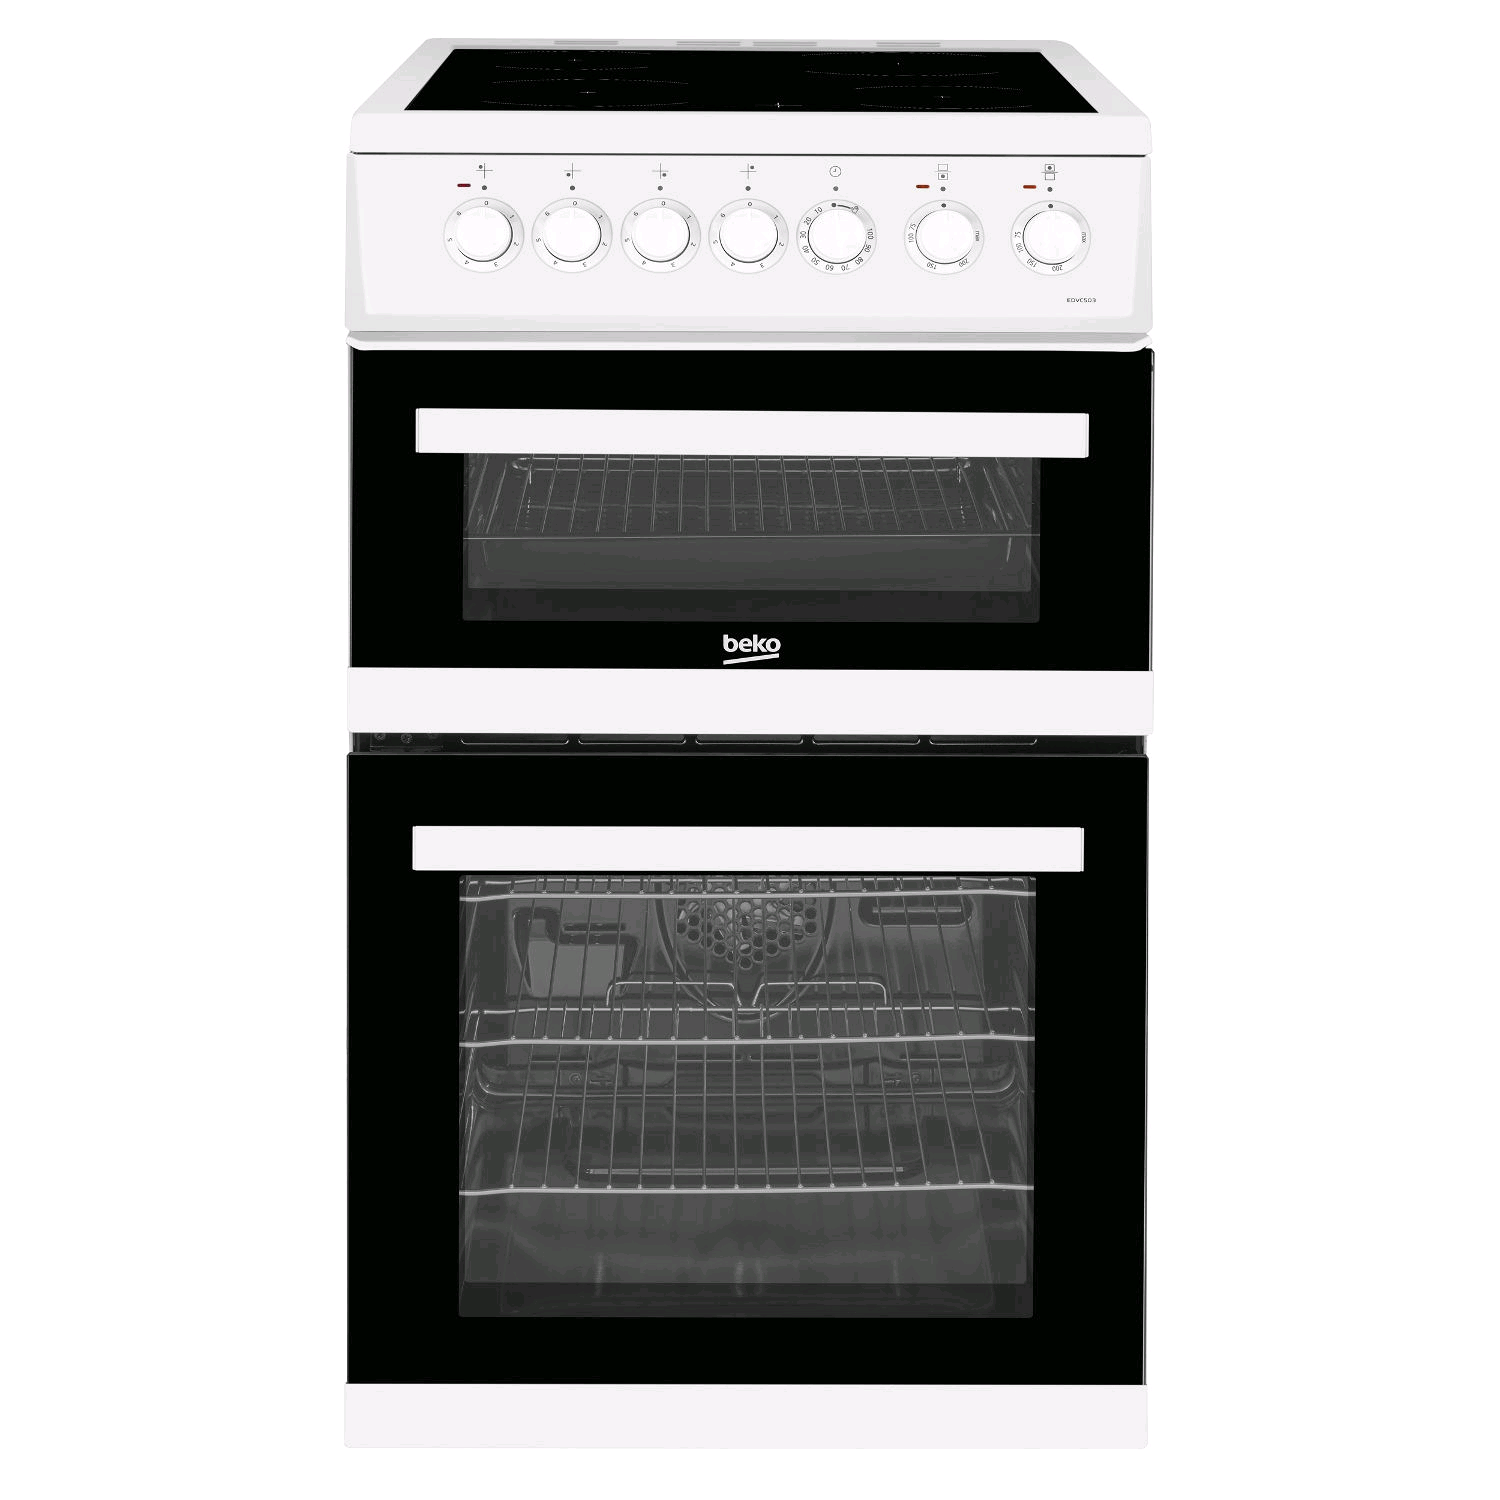 Beko Double Oven Ceramic Cooker White 50cm wide